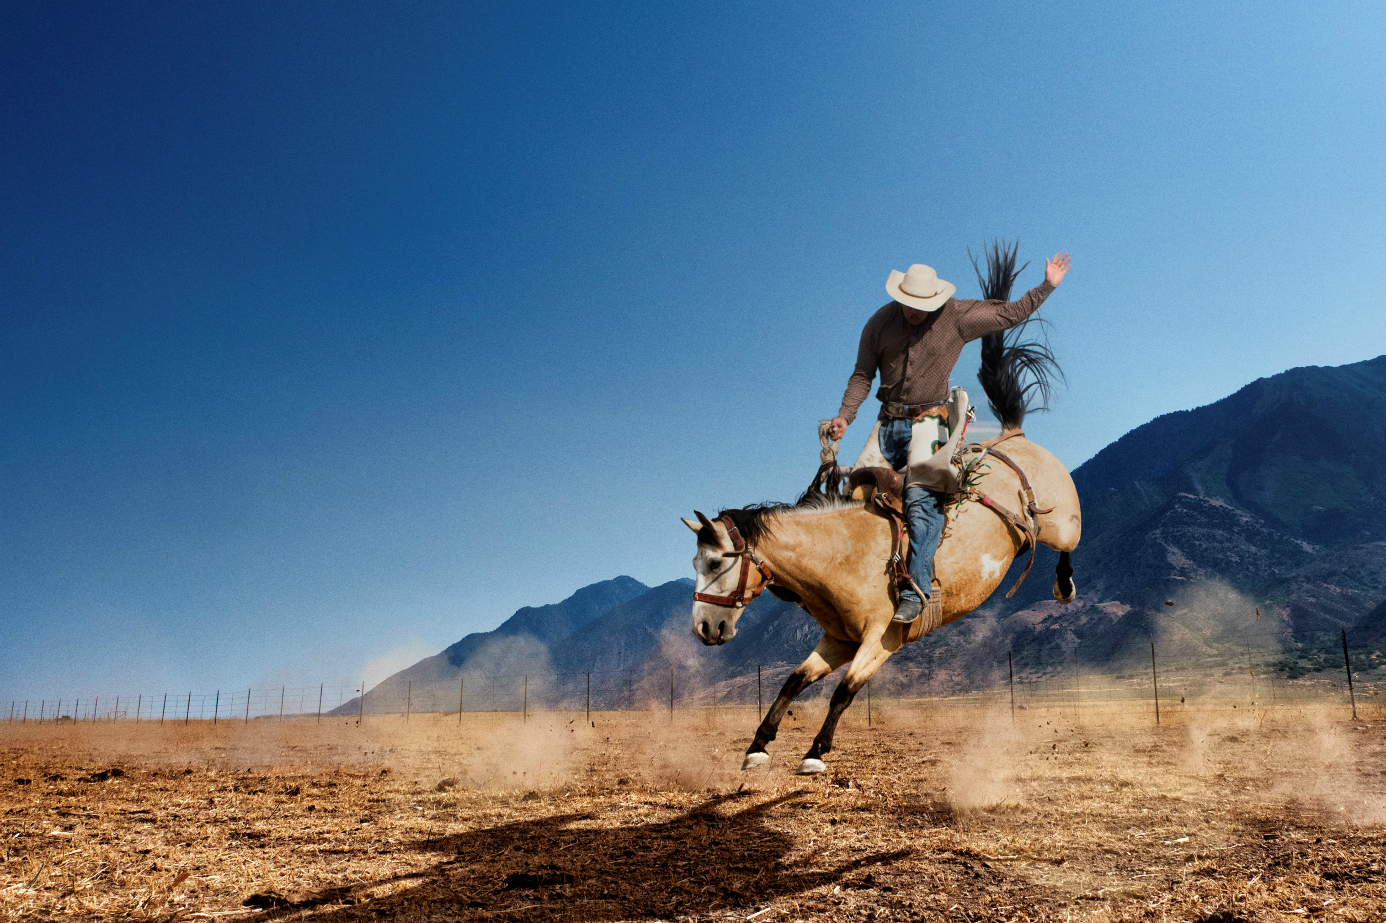 How to Regulate the 'Wild West' in the Crypto World